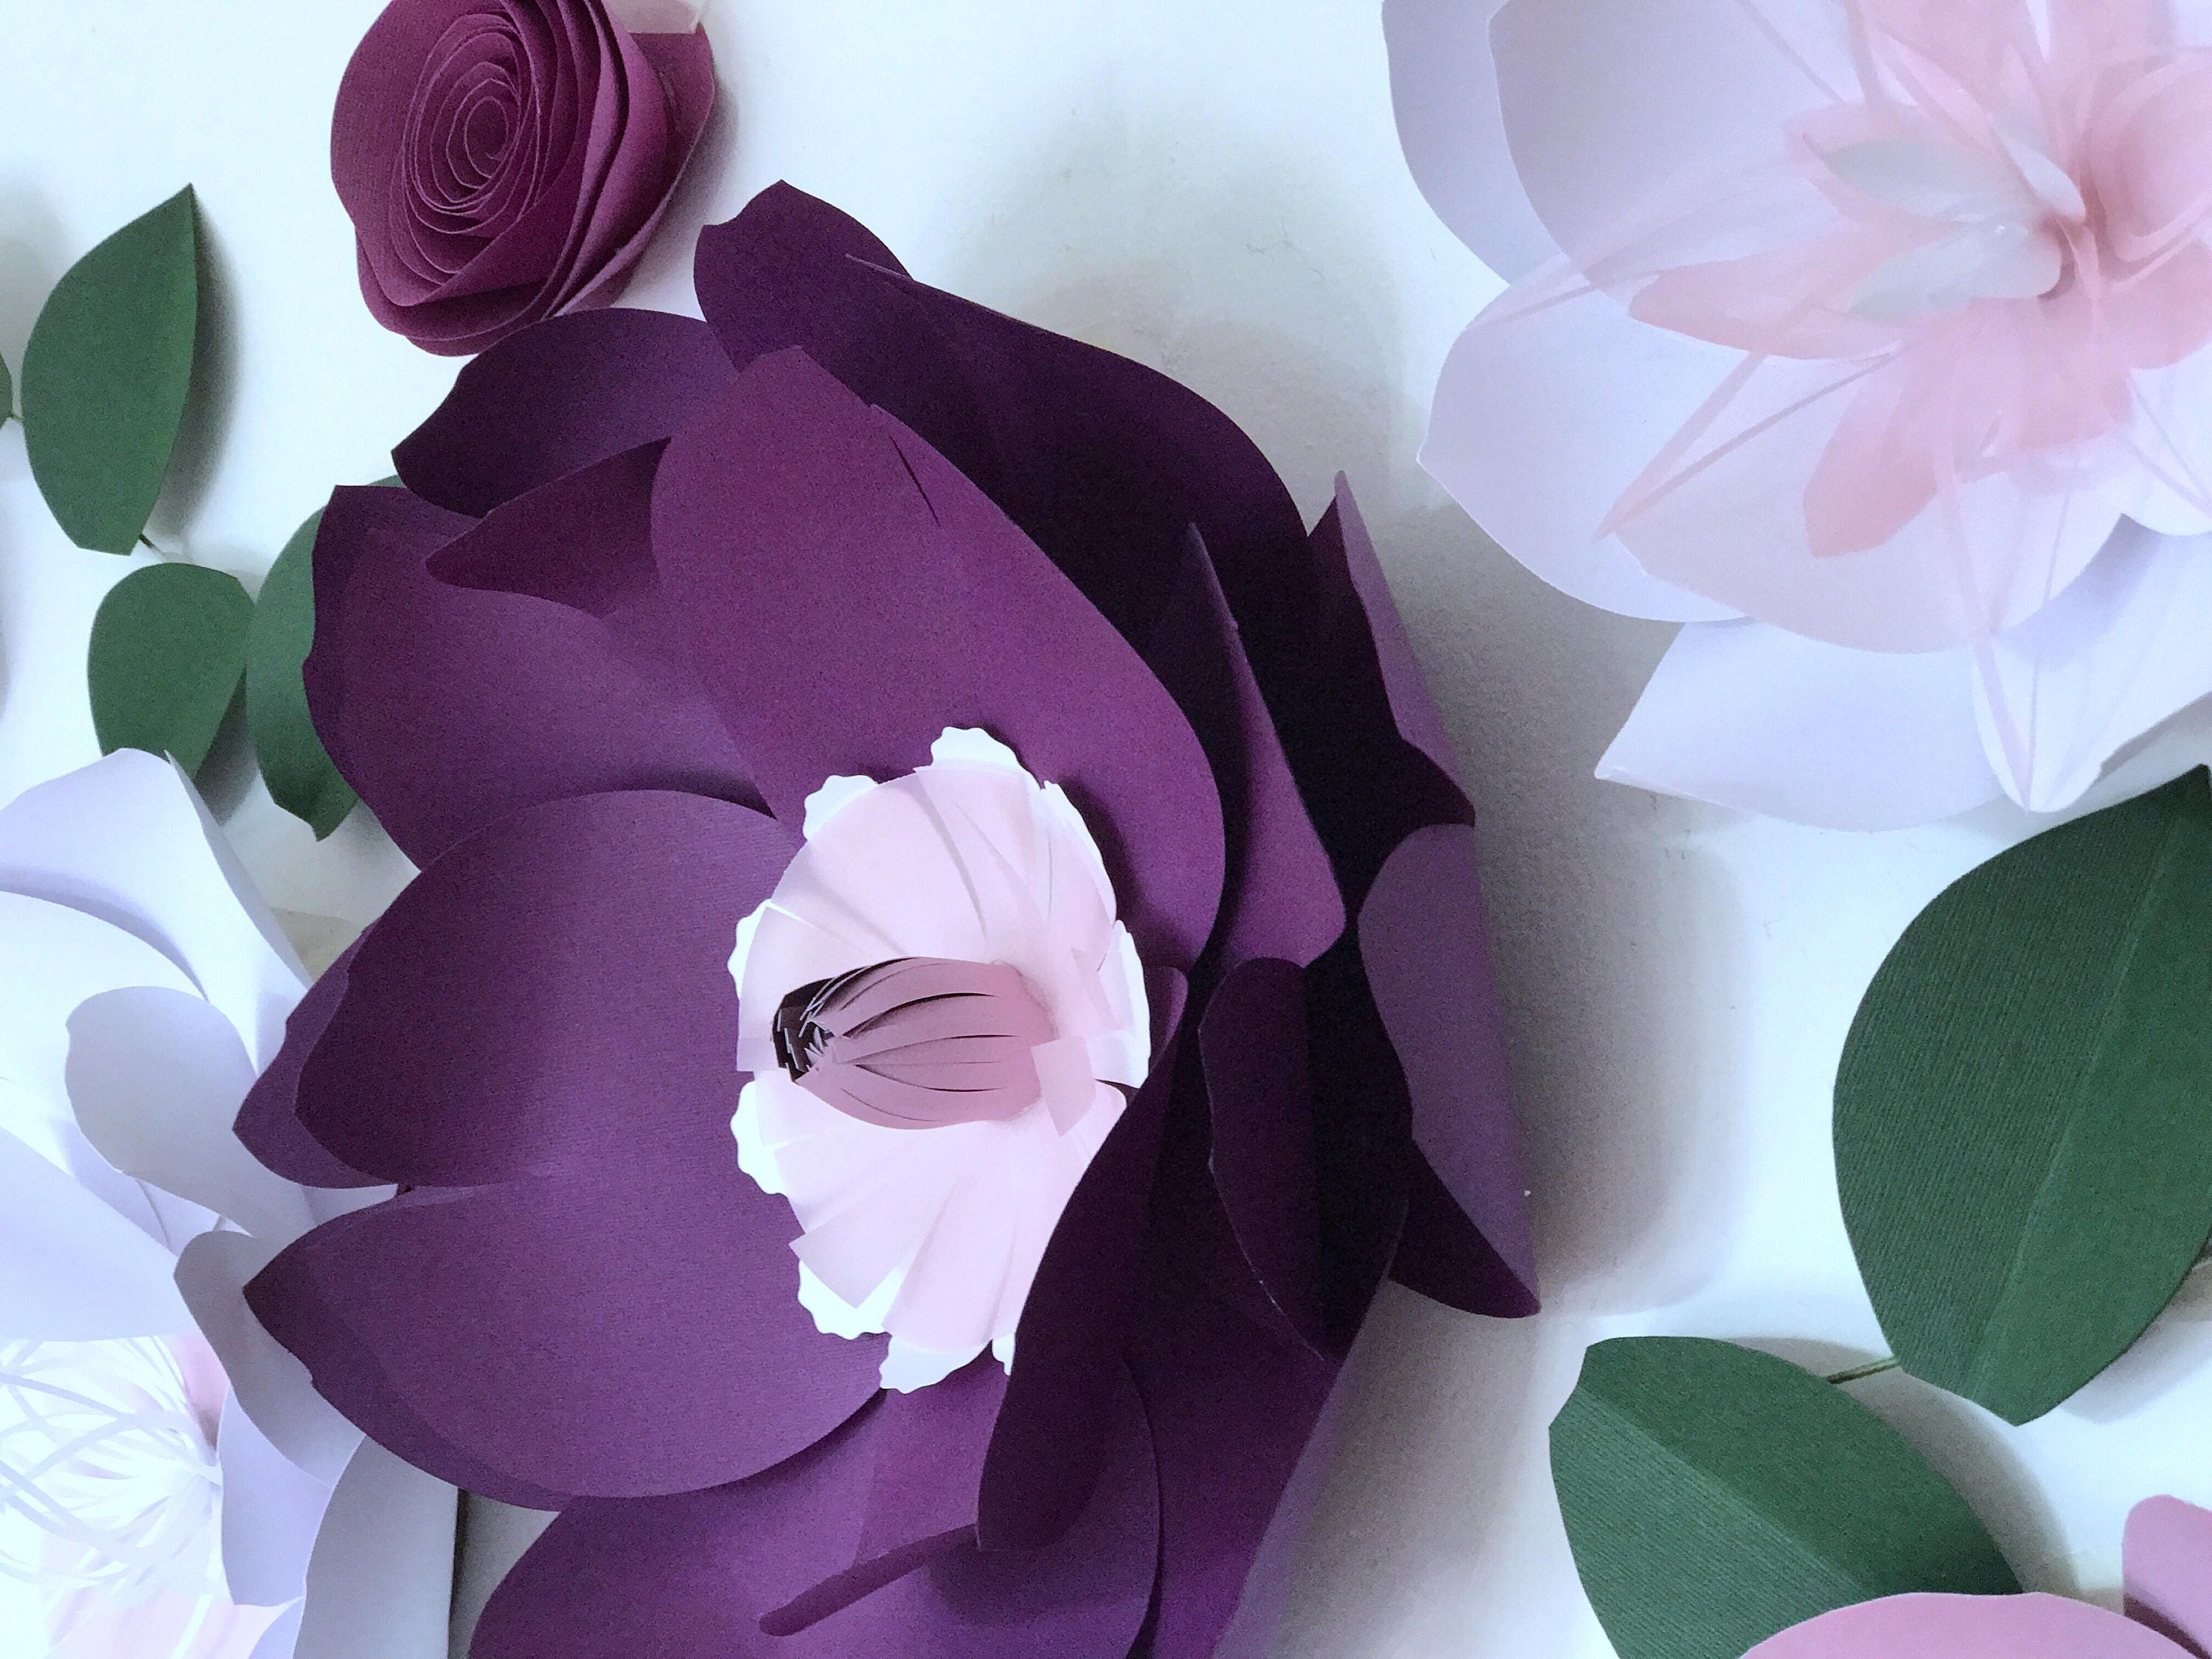 Paper flowers wall decor baby girl nursery room paper flowers paper flowers wall decor baby girl nursery room paper flowers wall decor above the crib decor large paper flowers lavender paper flowers amipublicfo Image collections